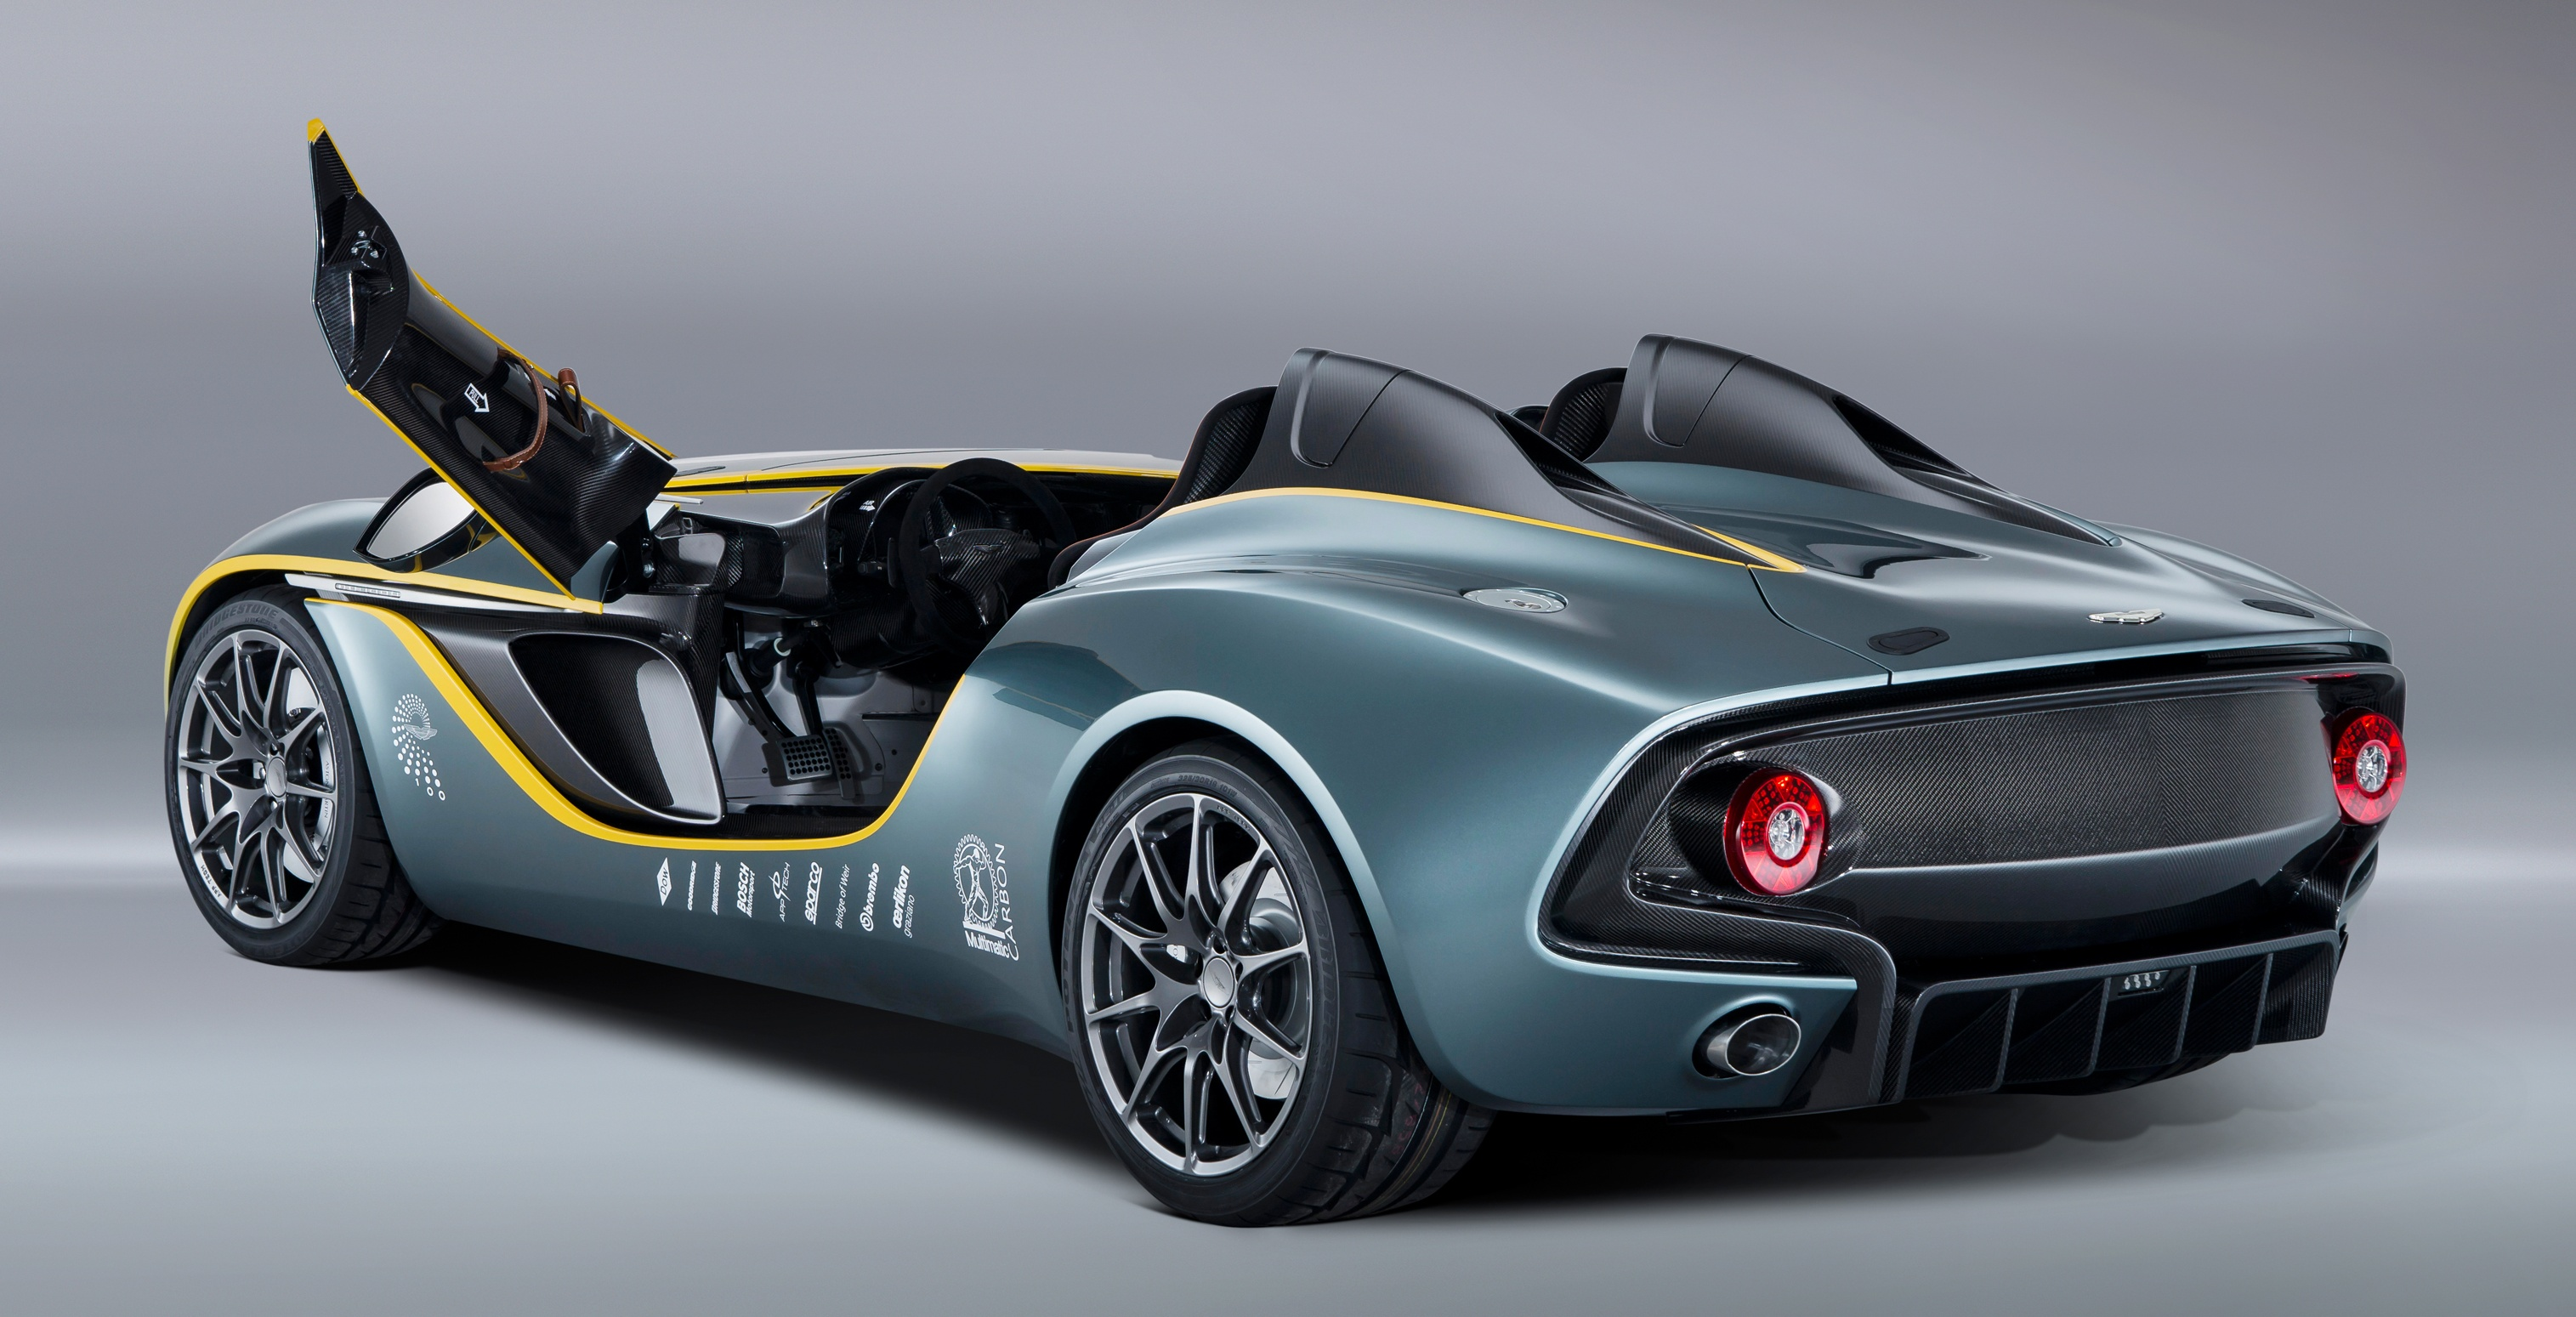 aston martin cc100 speedster concept is a one-off